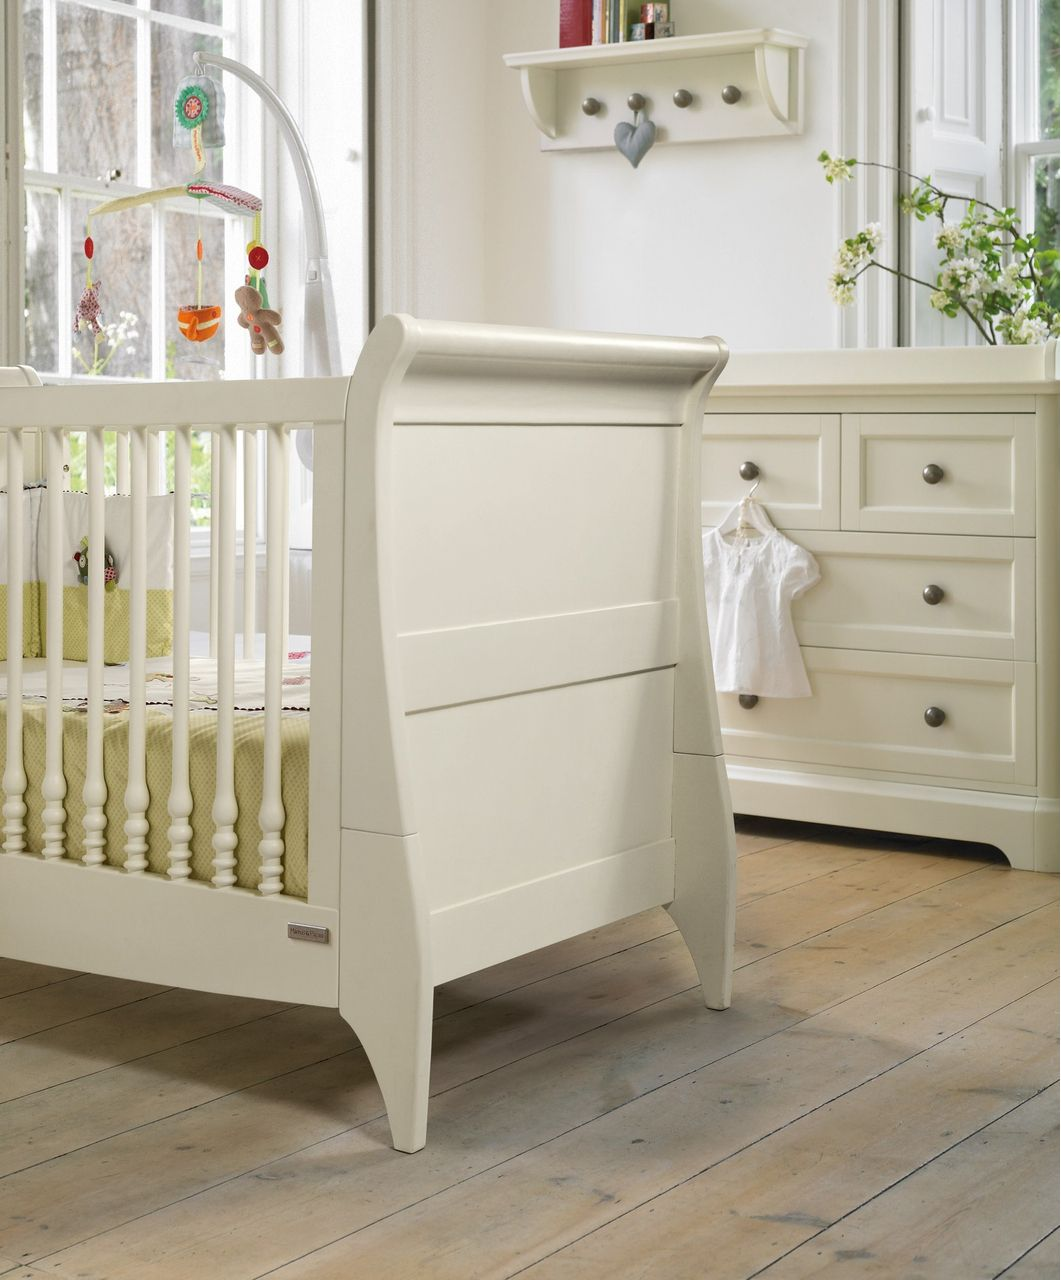 3 Piece Orchard Set From Mamas Papas 1355 Nursery Furniture